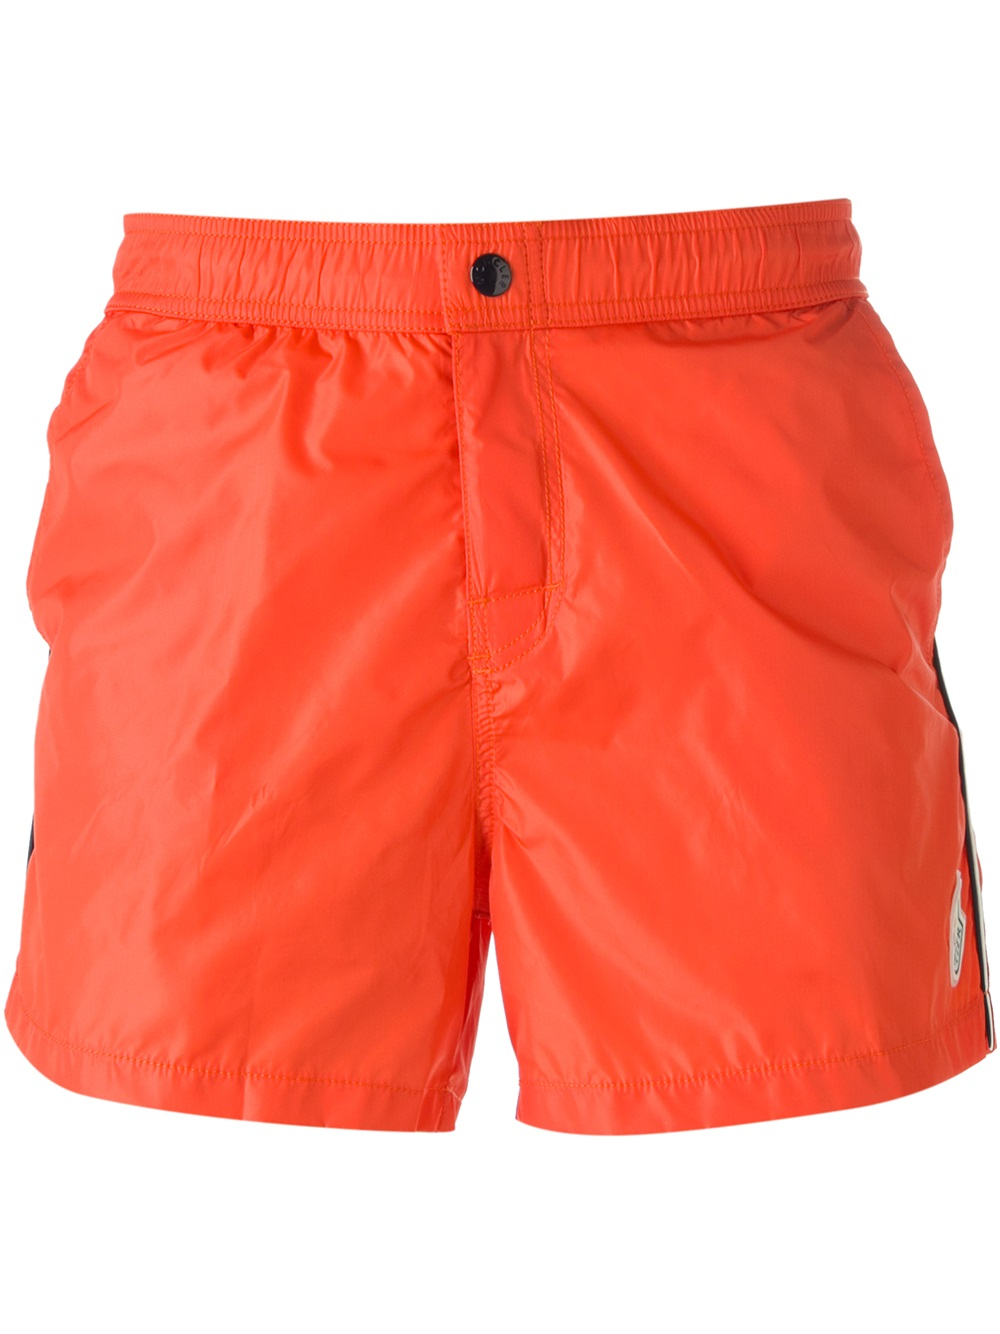 yellow moncler shorts